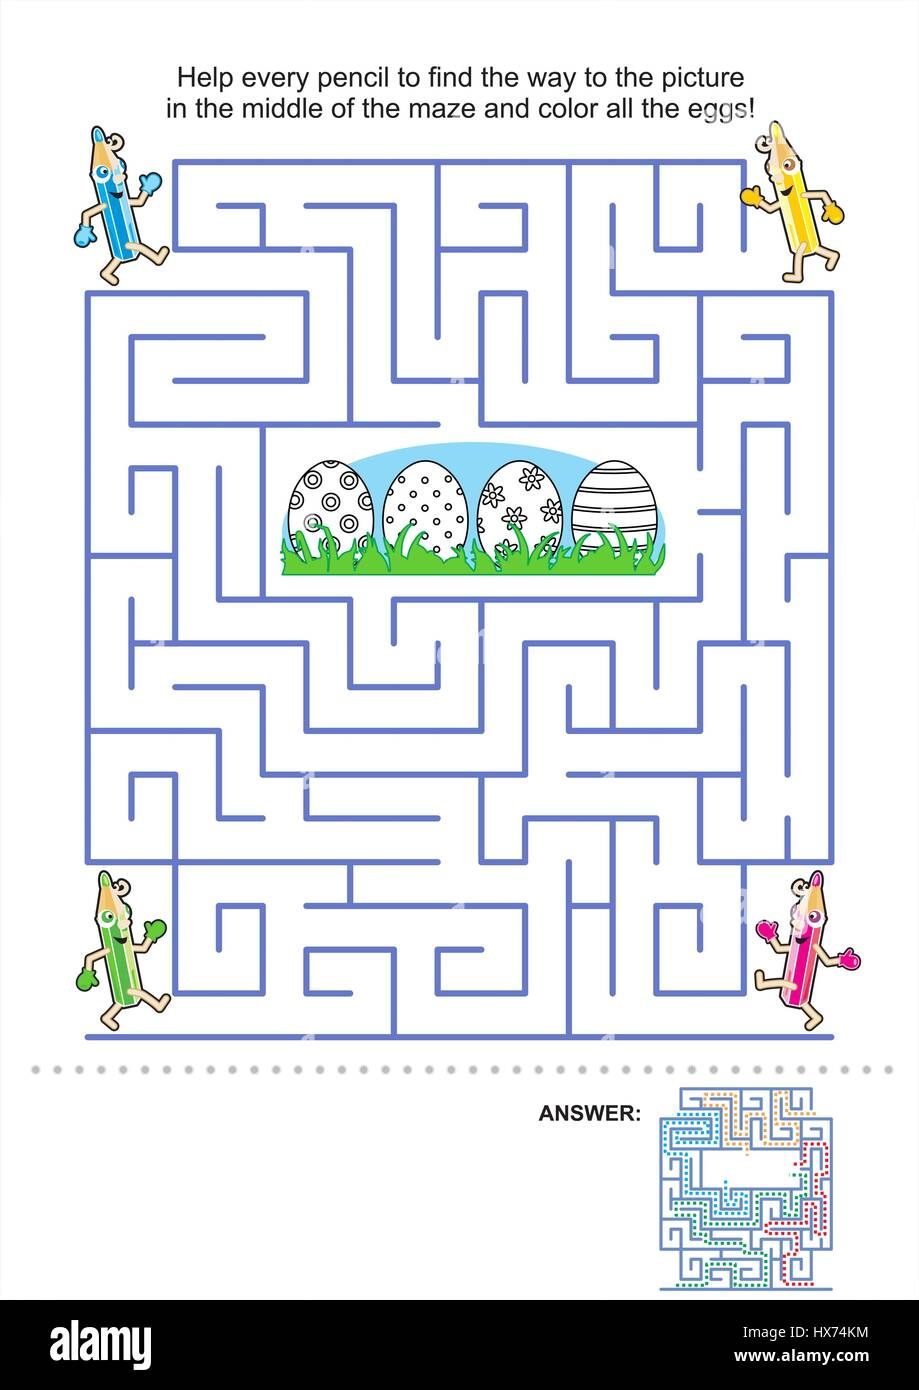 easter maze game and coloring activity page for kids help the